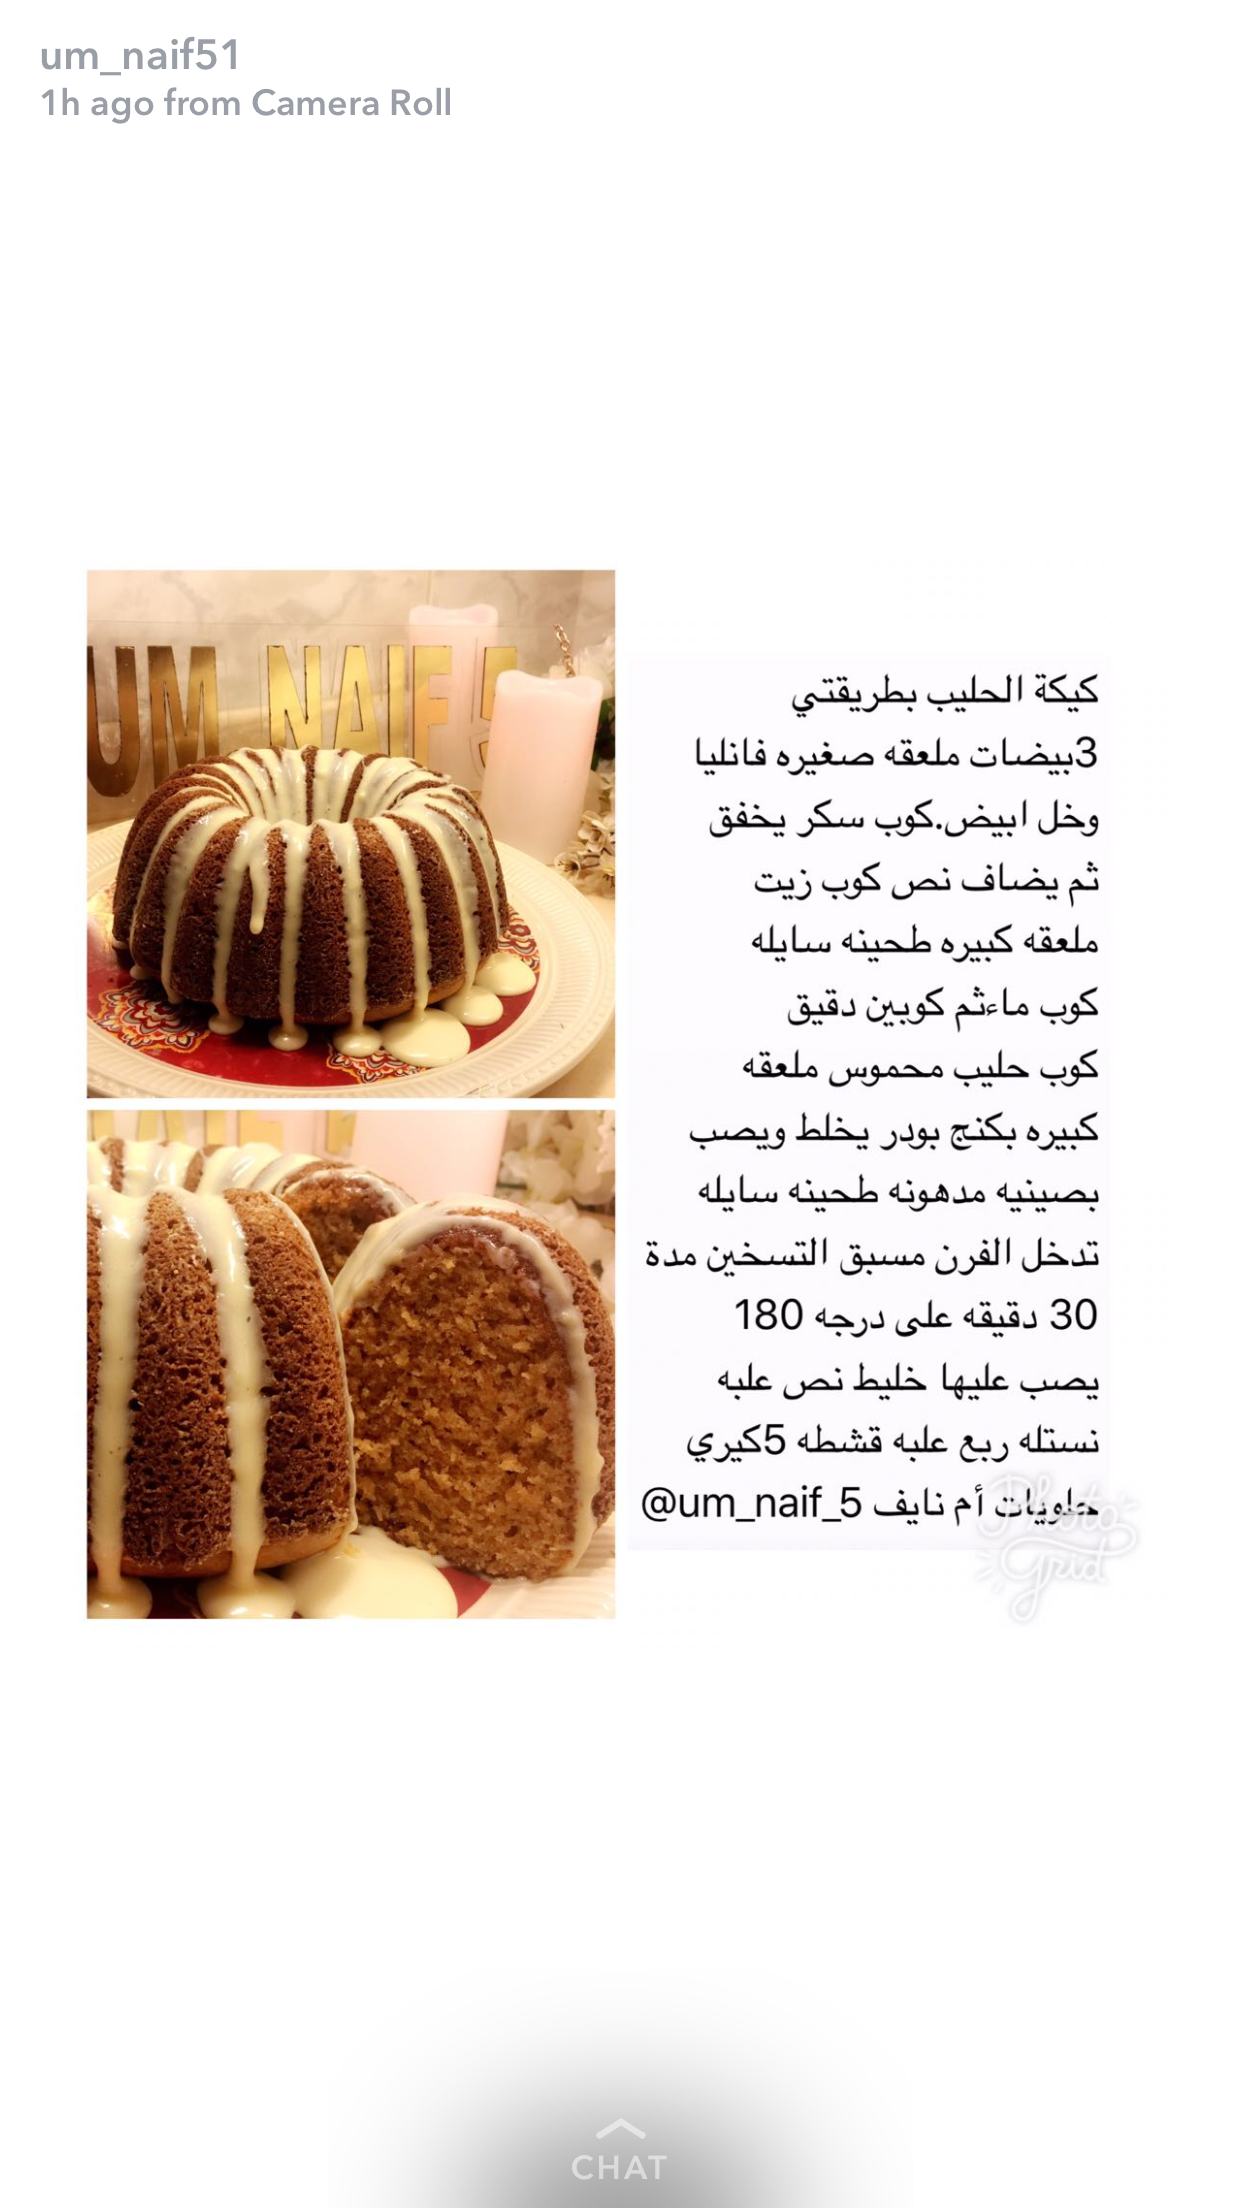 كيكة الحليب Coffee Drink Recipes Arabic Food Sweets Recipes